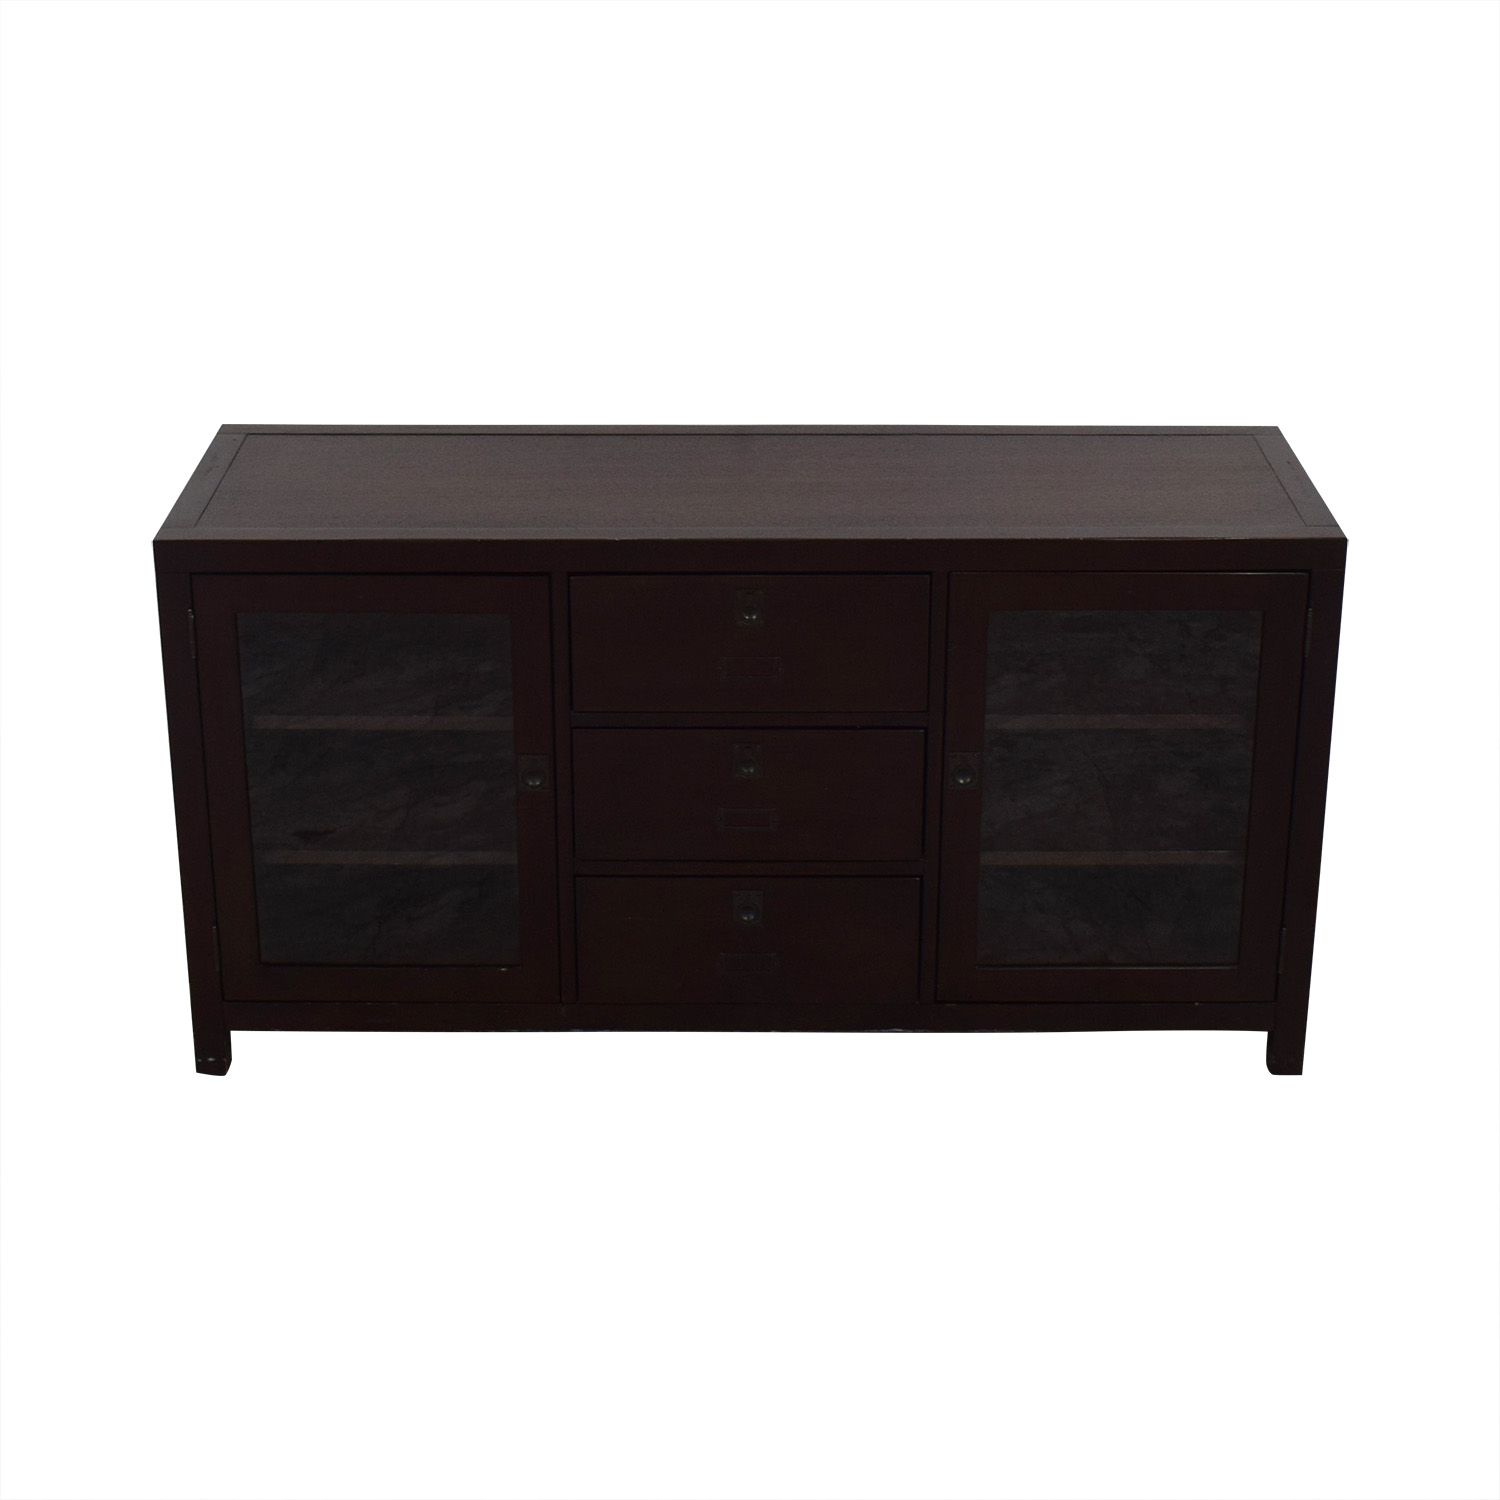 shop Crate & Barrel Media Console Crate & Barrel Storage